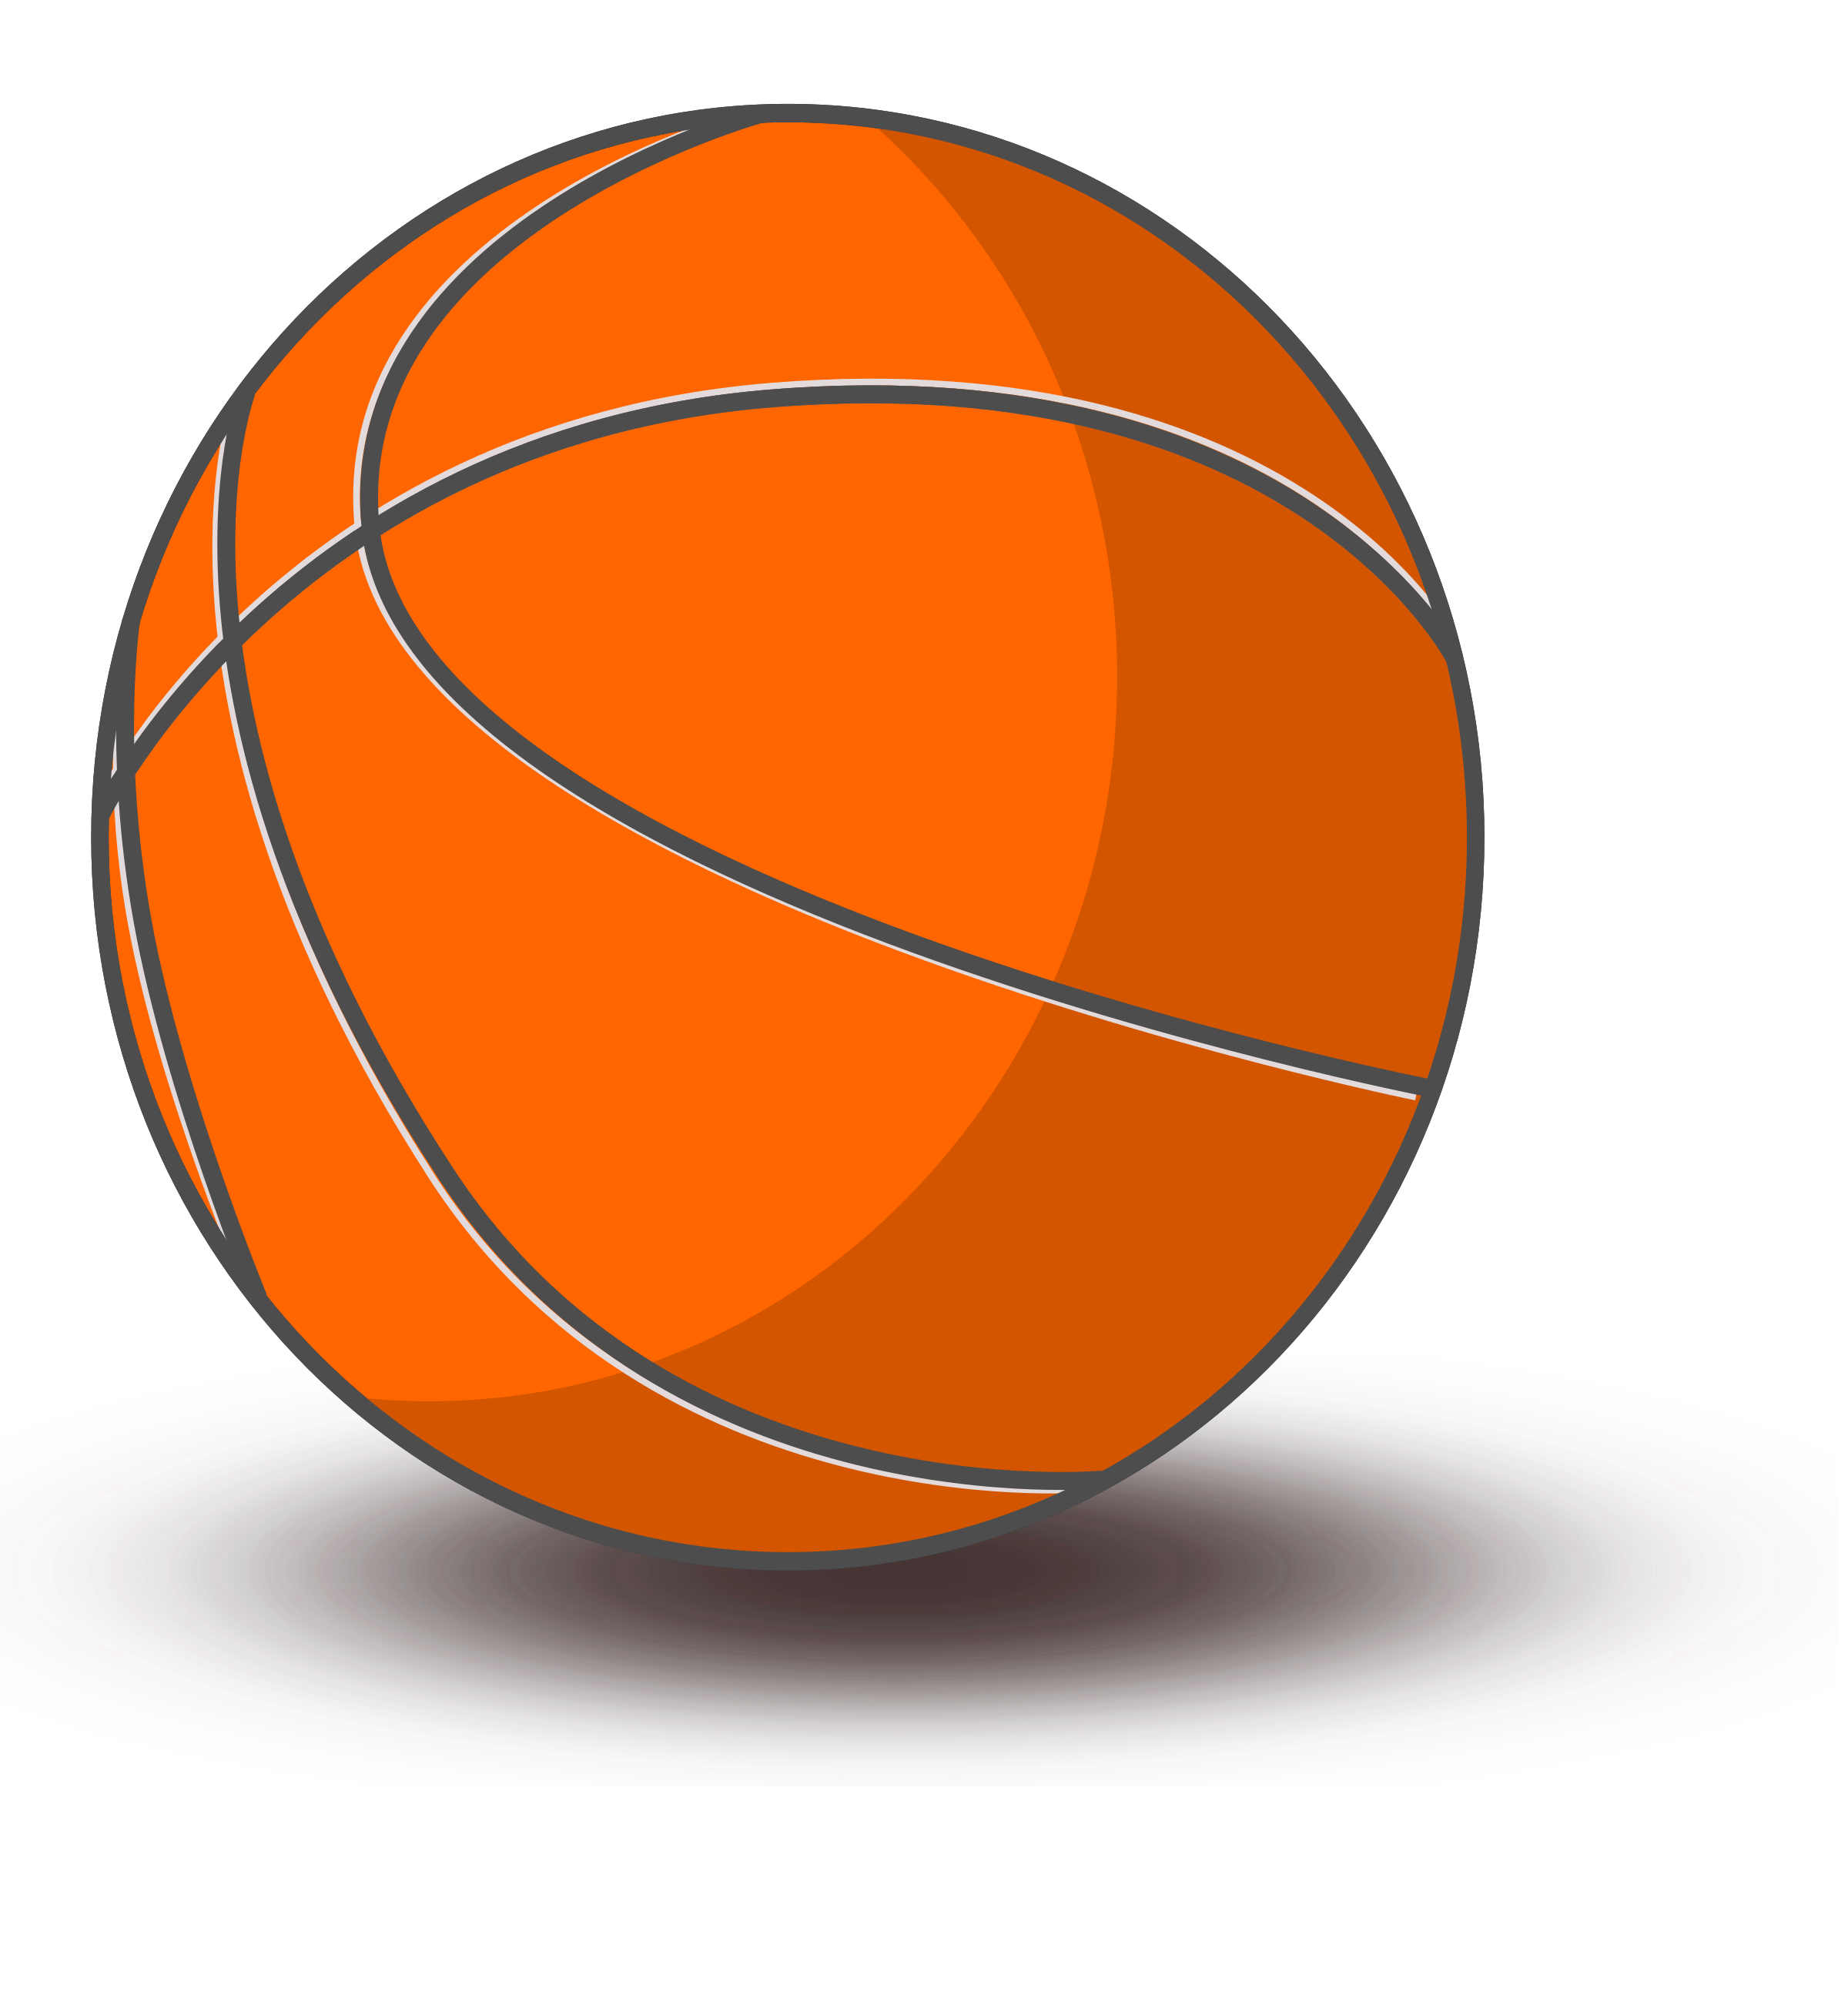 Basketball shadow clipart clipart black and white Clipart - Basketball clipart black and white